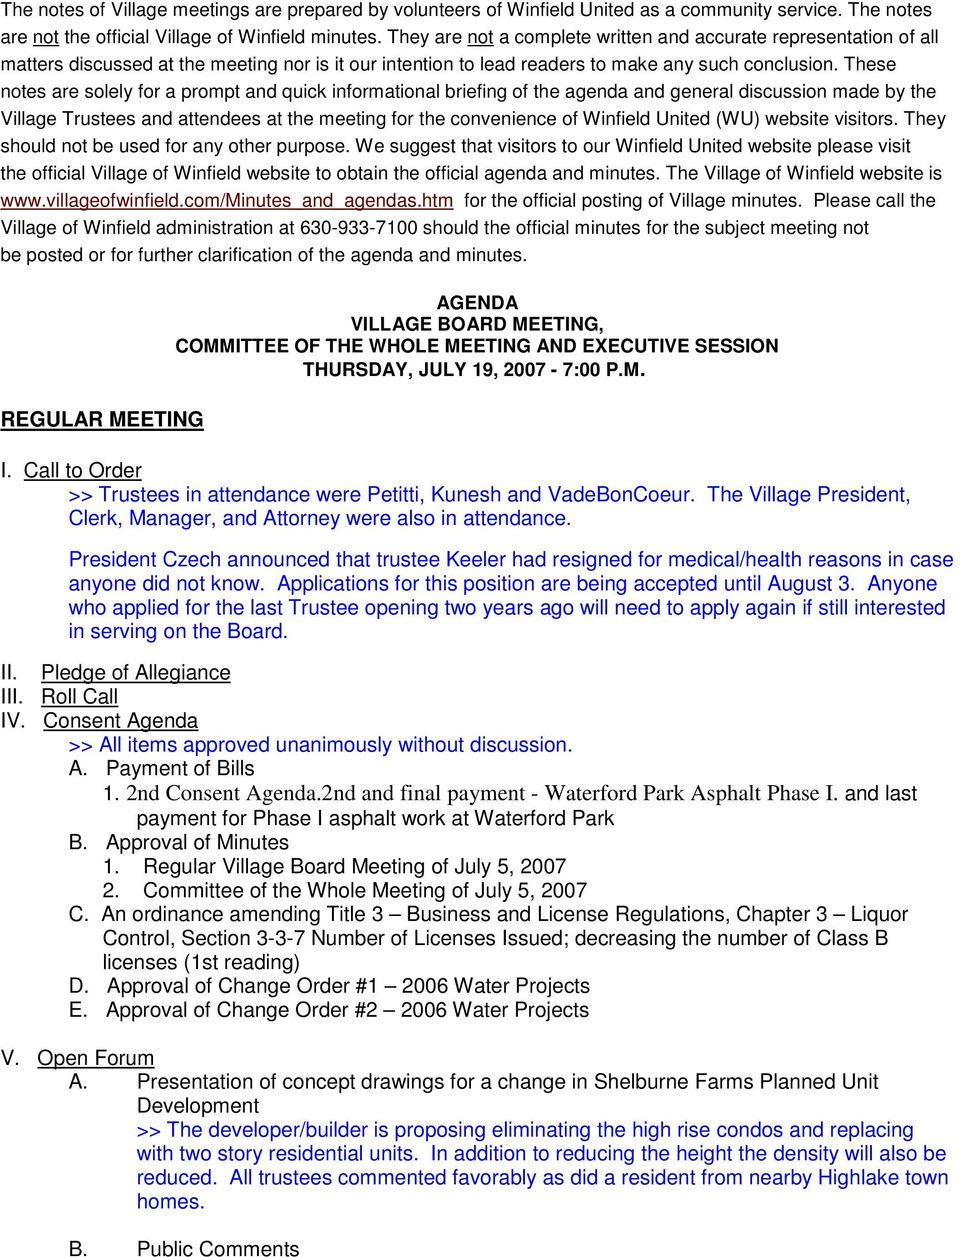 These notes are solely for a prompt and quick informational briefing of the agenda and general discussion made by the Village Trustees and attendees at the meeting for the convenience of Winfield